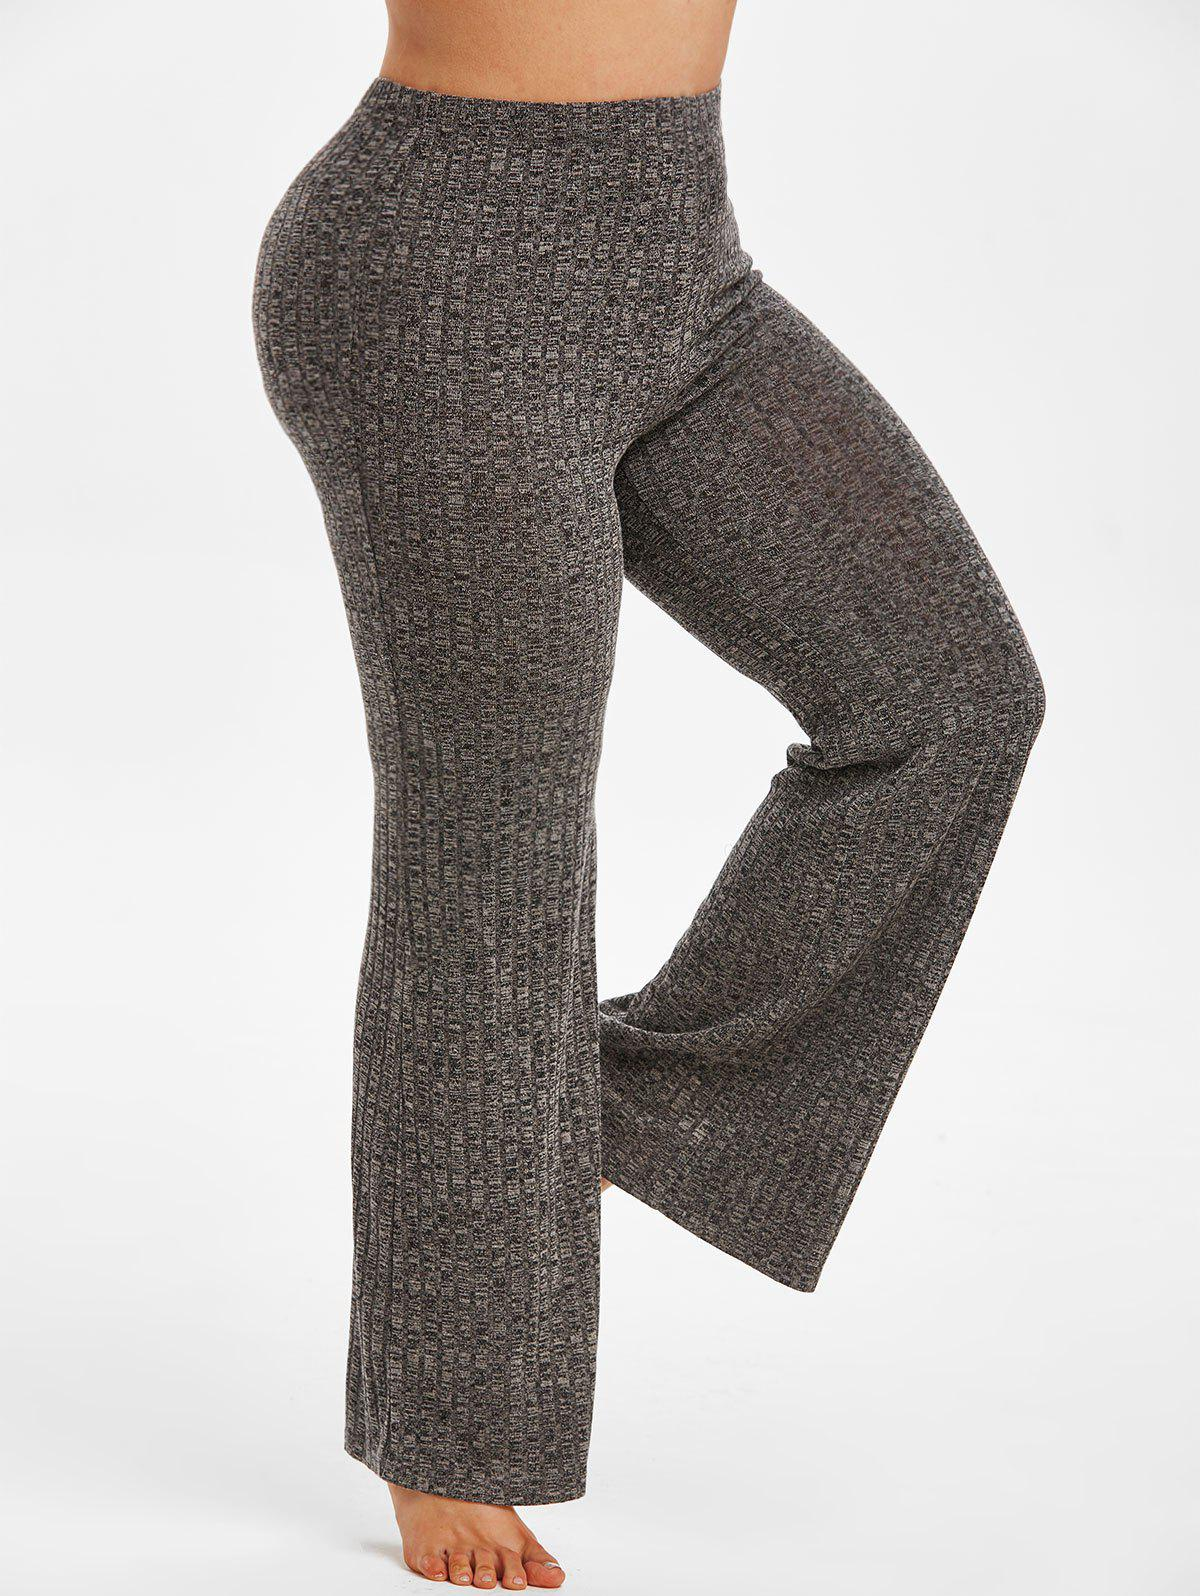 Plus Size Heathered Knitted Pajamas Pants - CARBON GRAY 5X